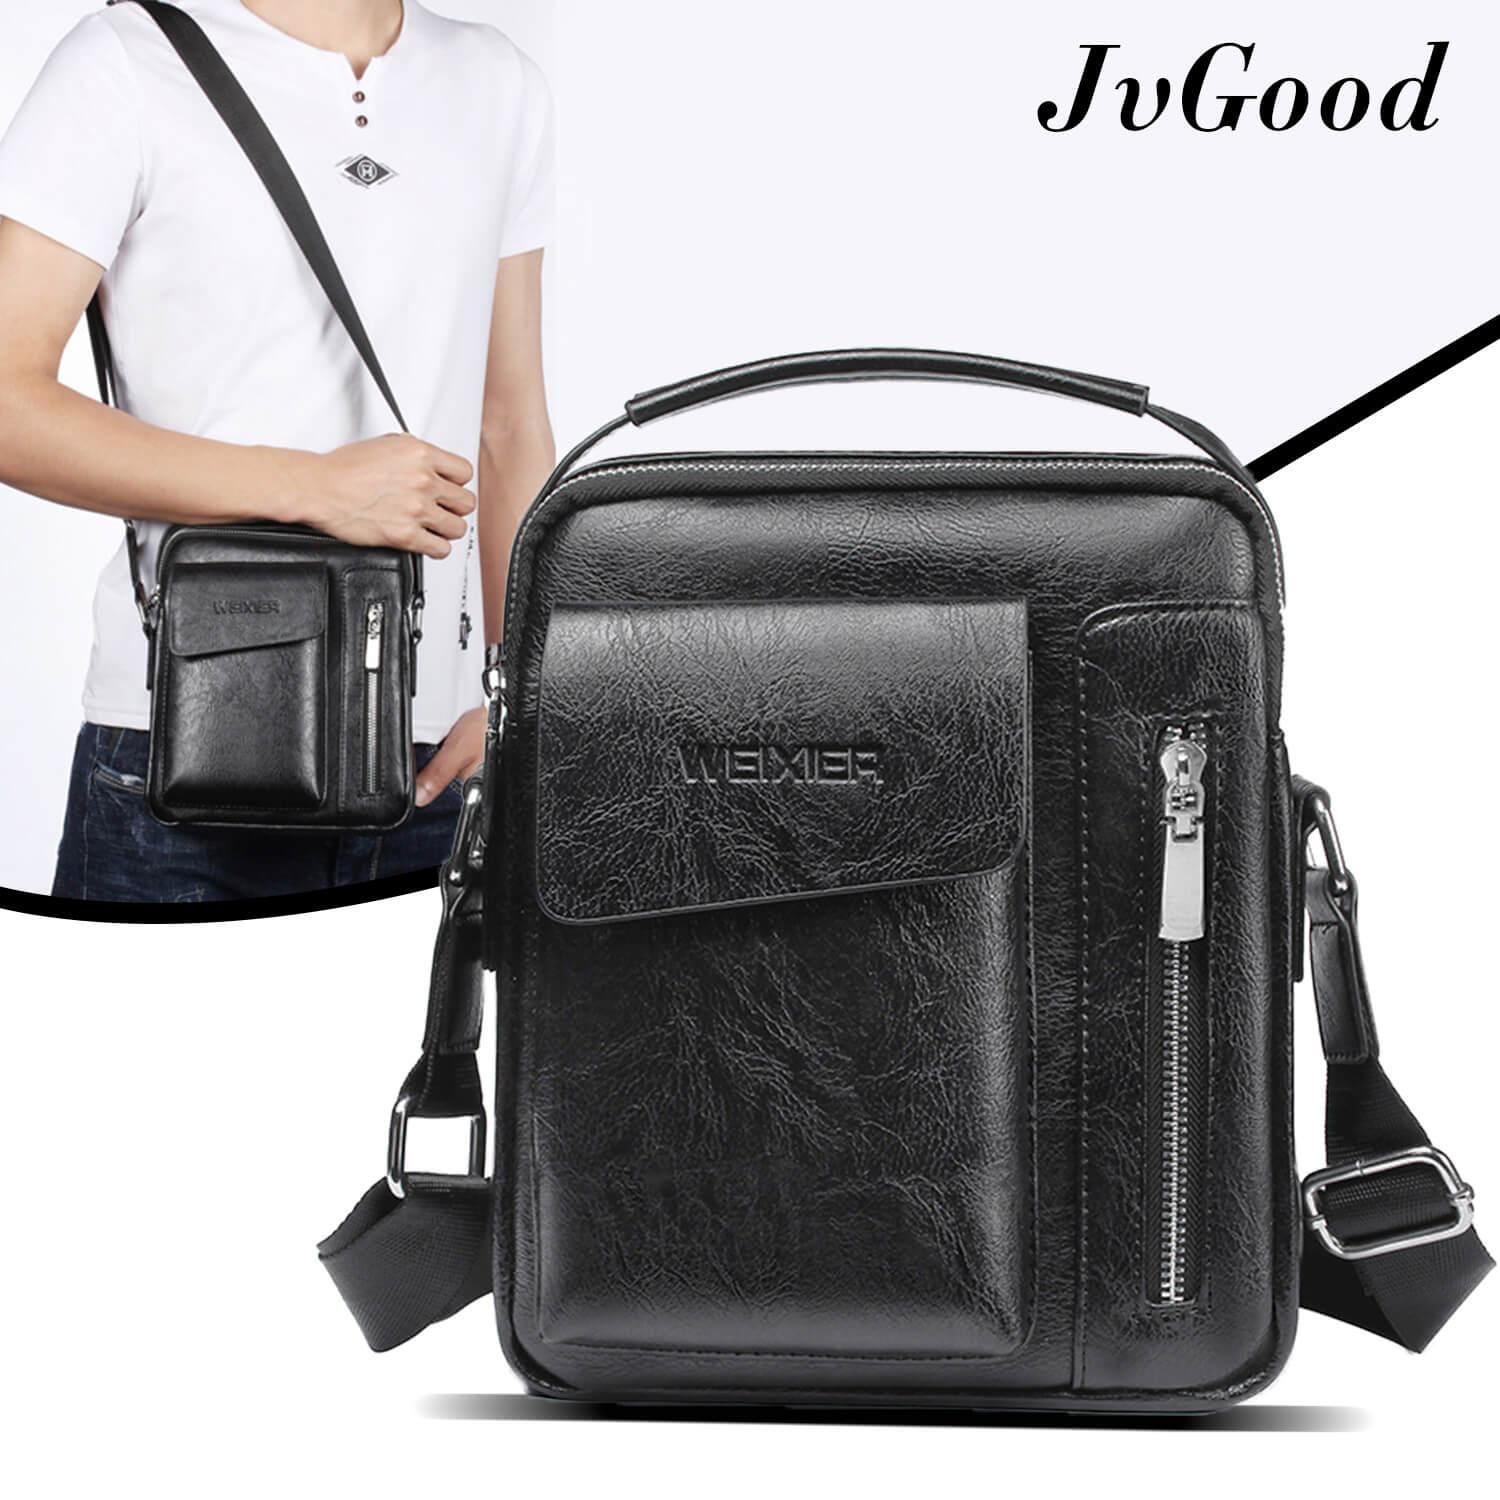 72a335f69edf JvGood Messenger Bags PU Leather Sling Shoulder Bag Male Travel Casual  Crossbody Bags Small Flap Handbags